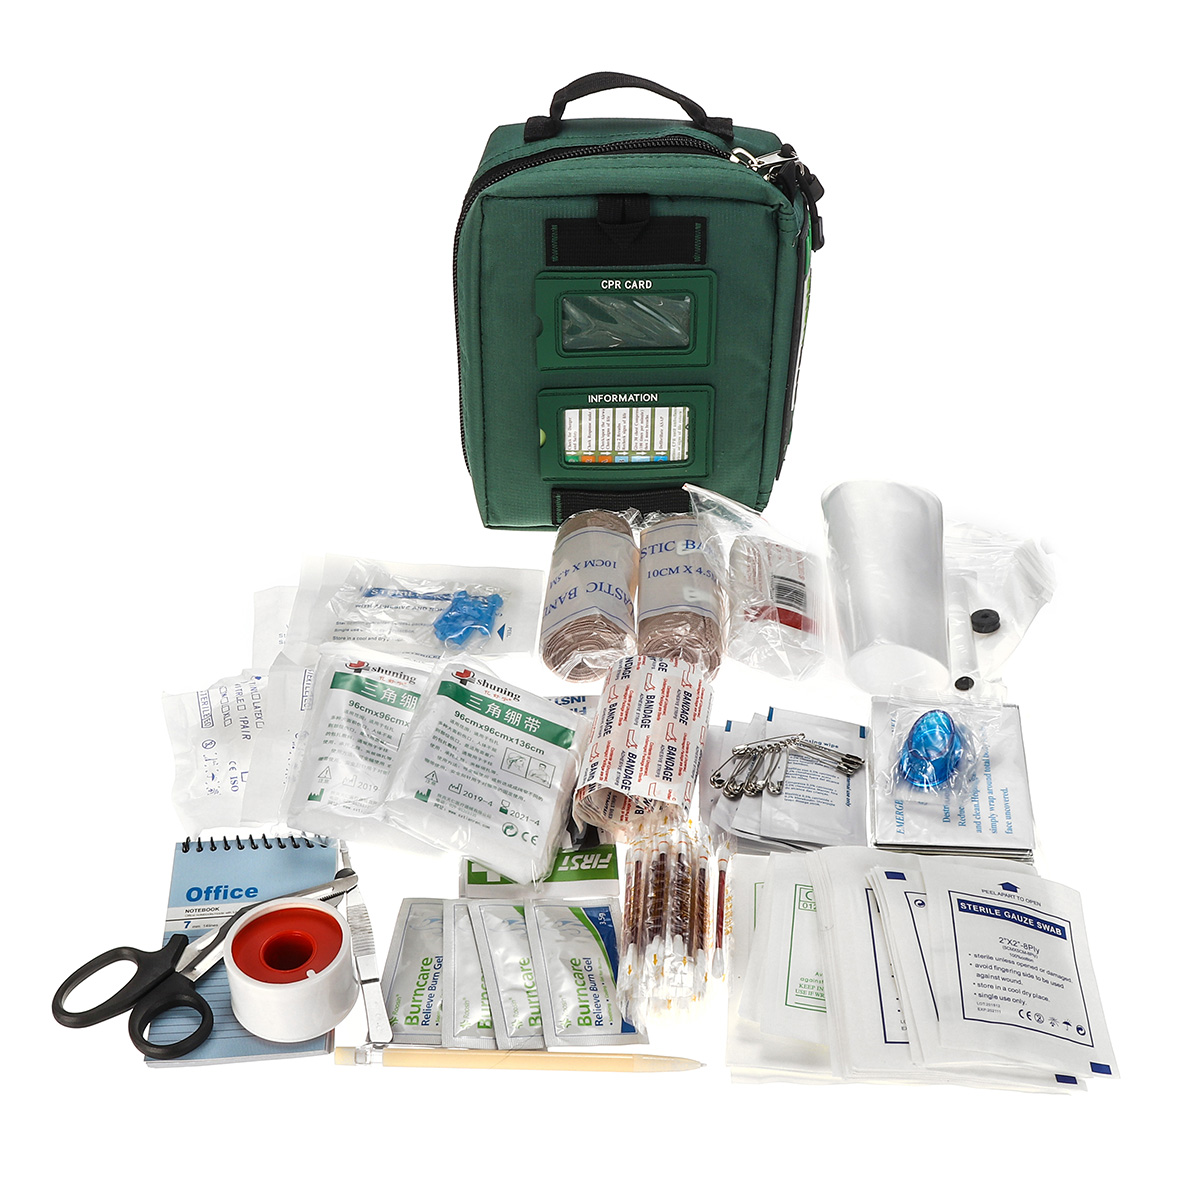 148 Pieces Premium Survival First Aid Kit Emergency Medical Bag Compact Home Outdoor Hunting Equipment